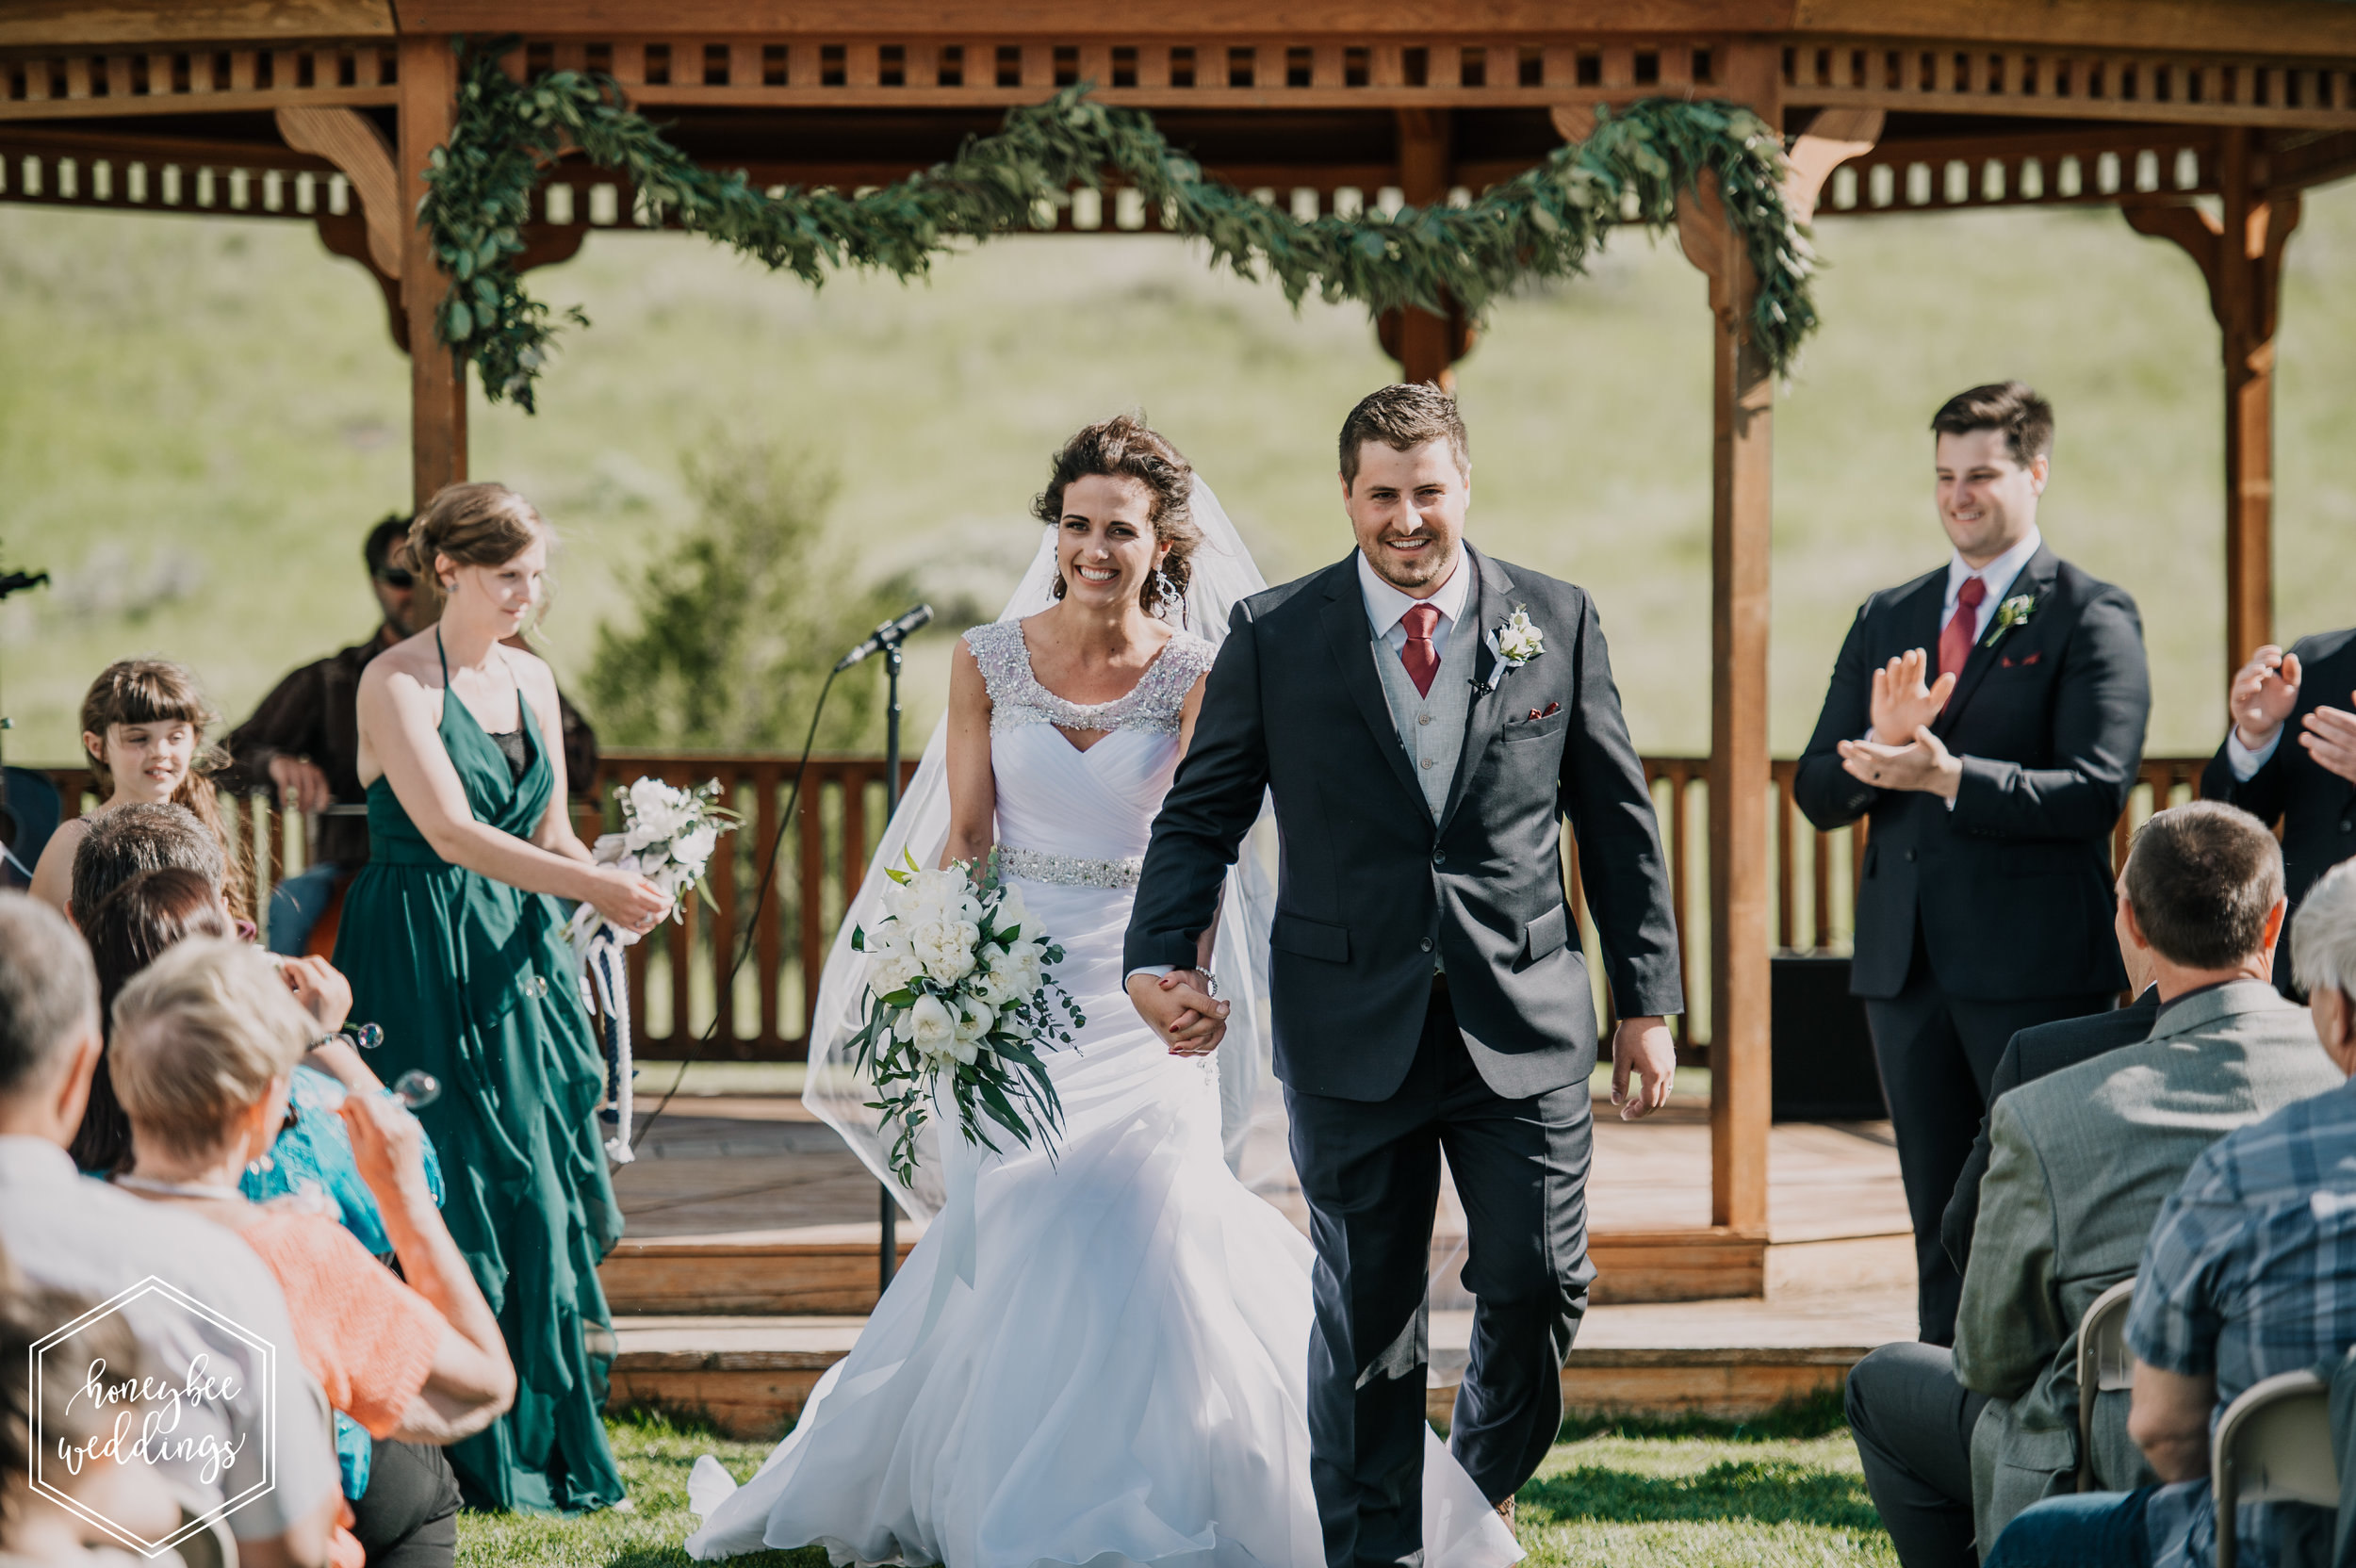 113 Chico Hotsprings Wedding_Bowdino 2018-3631-2.jpg